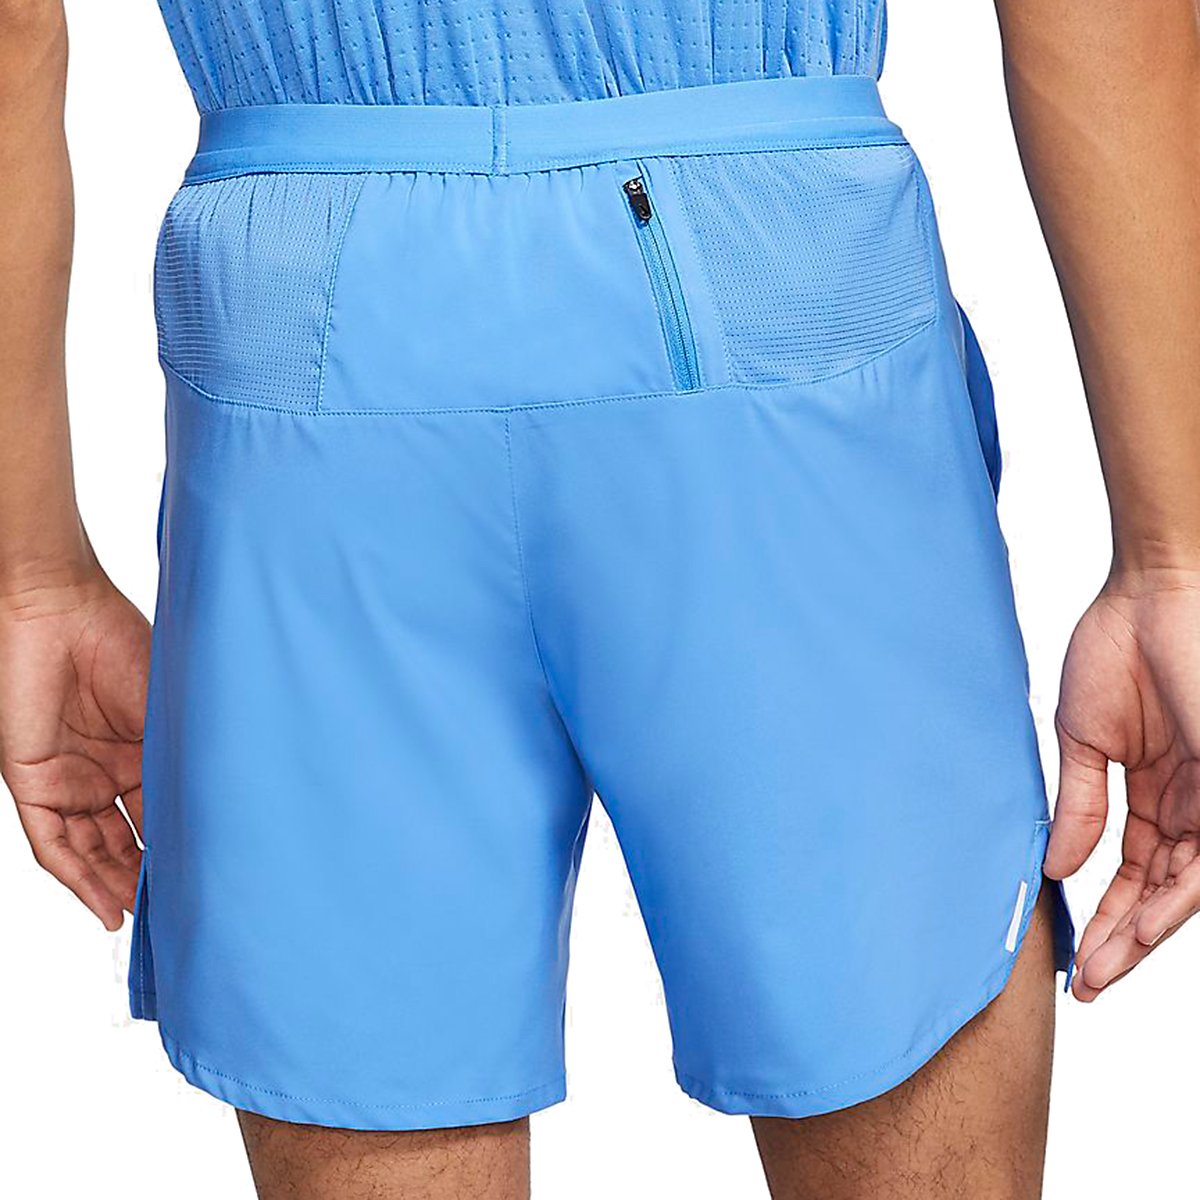 Men's Nike Flex Stride 7 Inch 2-in-1 Short  - Color: Pacific Blue - Size: M, Pacific Blue, large, image 3